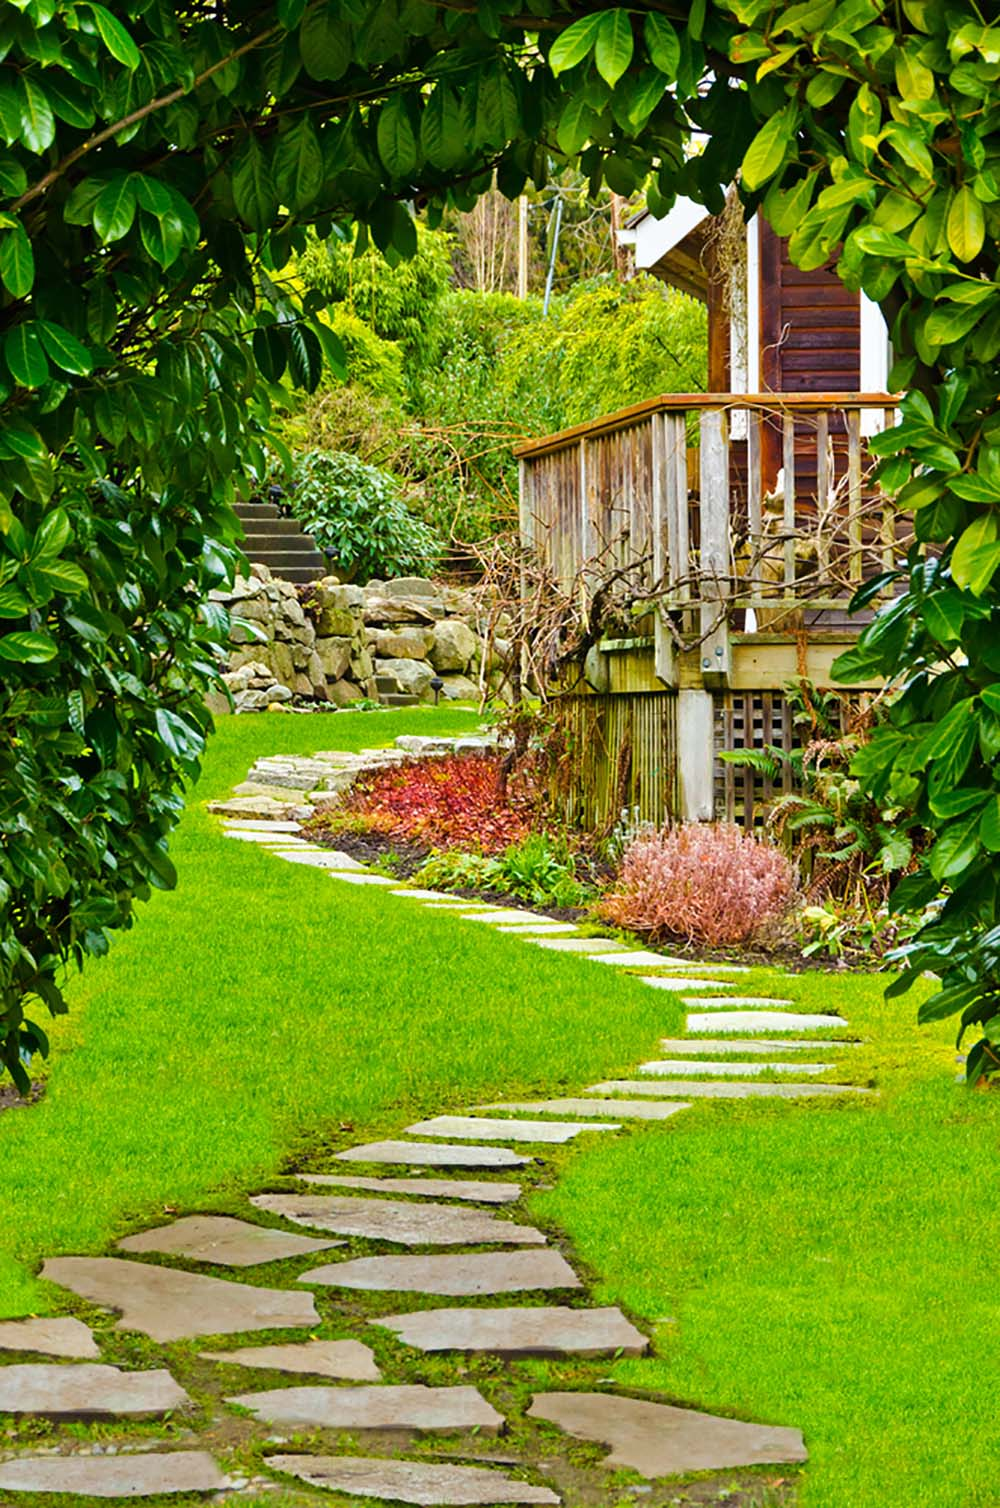 37 Inspiring Front Yard Landscaping Ideas - Page 3 of 3 on Uphill Backyard Ideas  id=49094